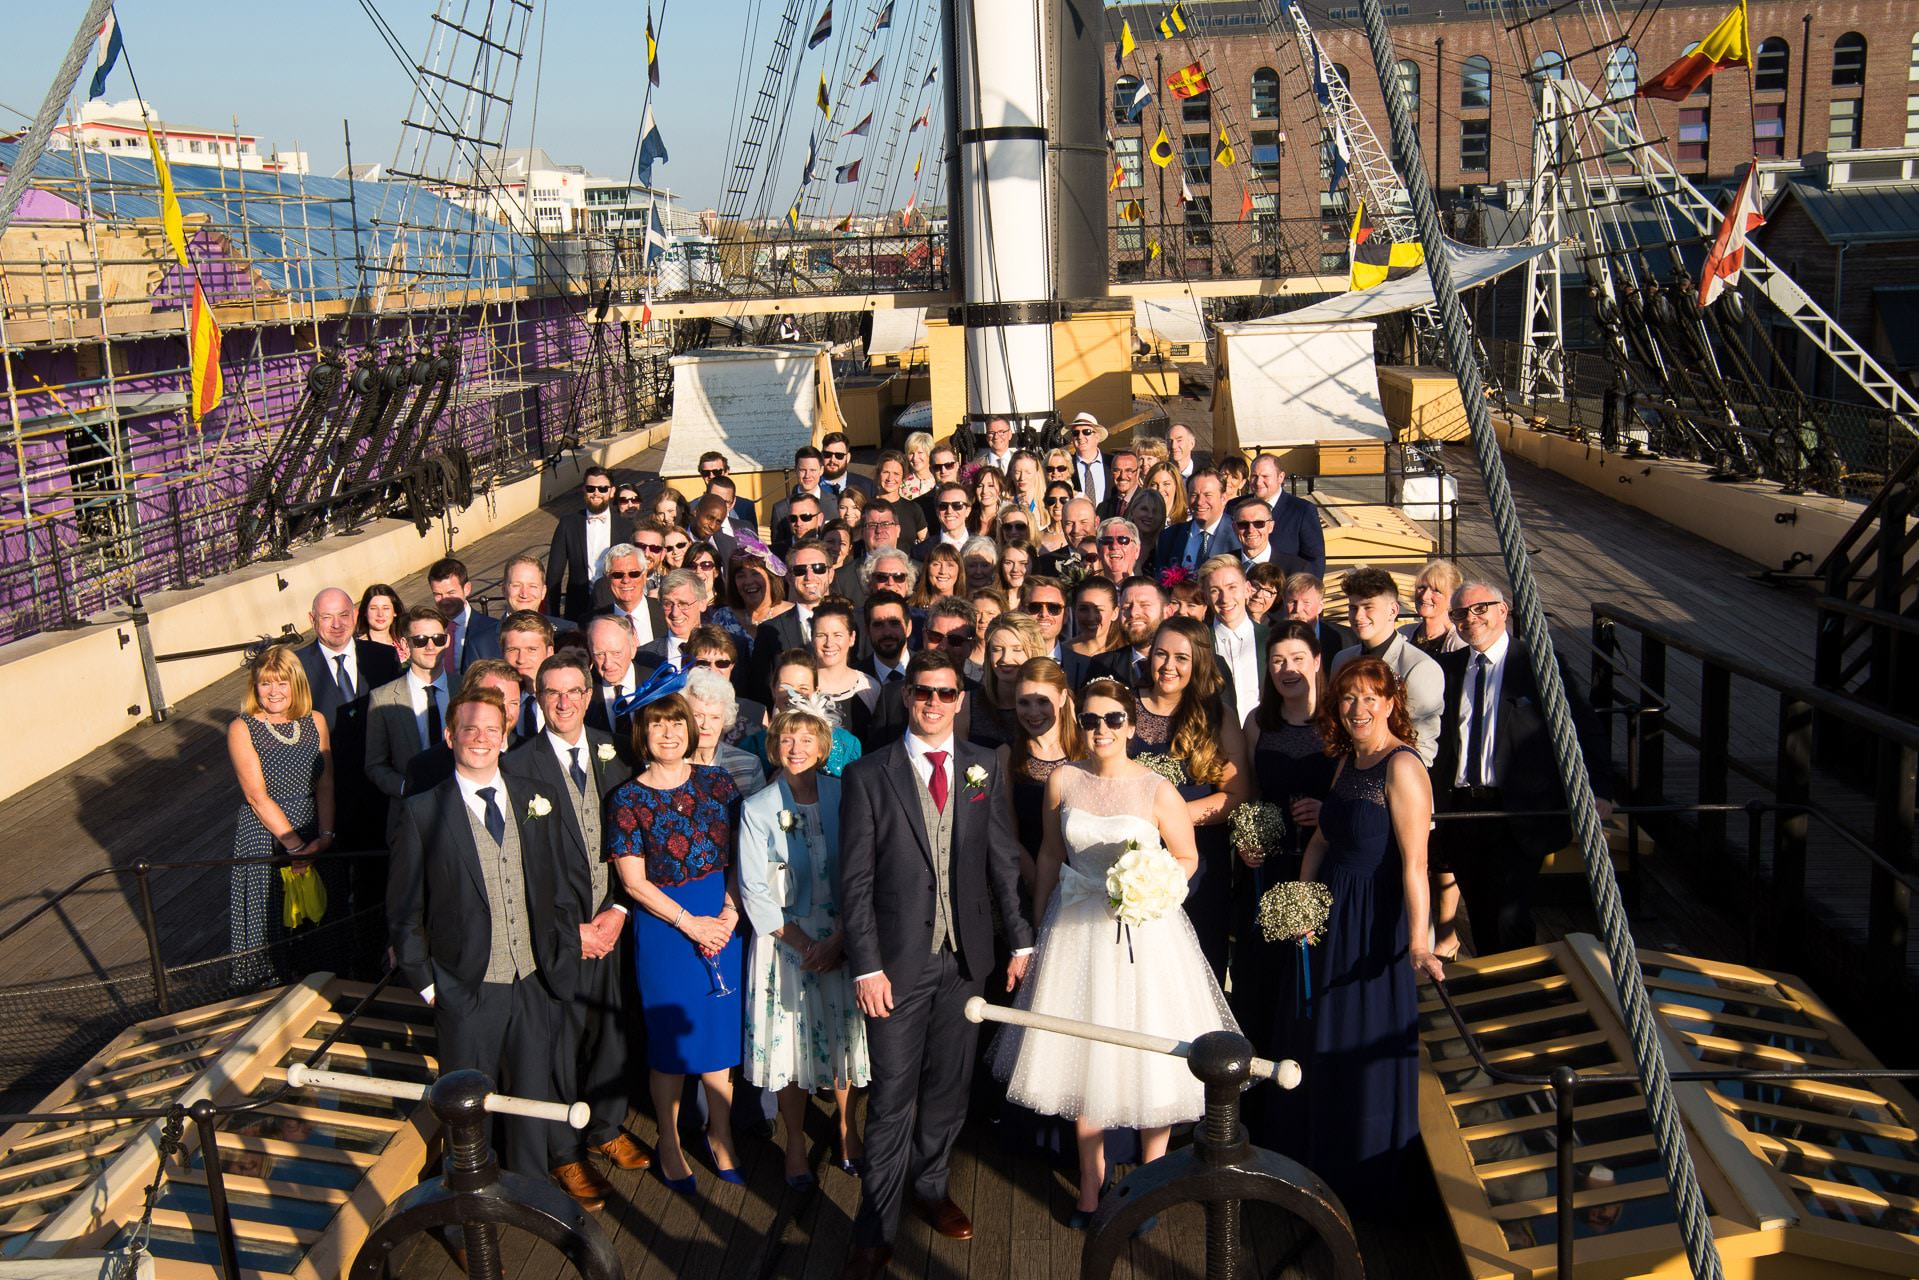 ss great britain wedding photography 28